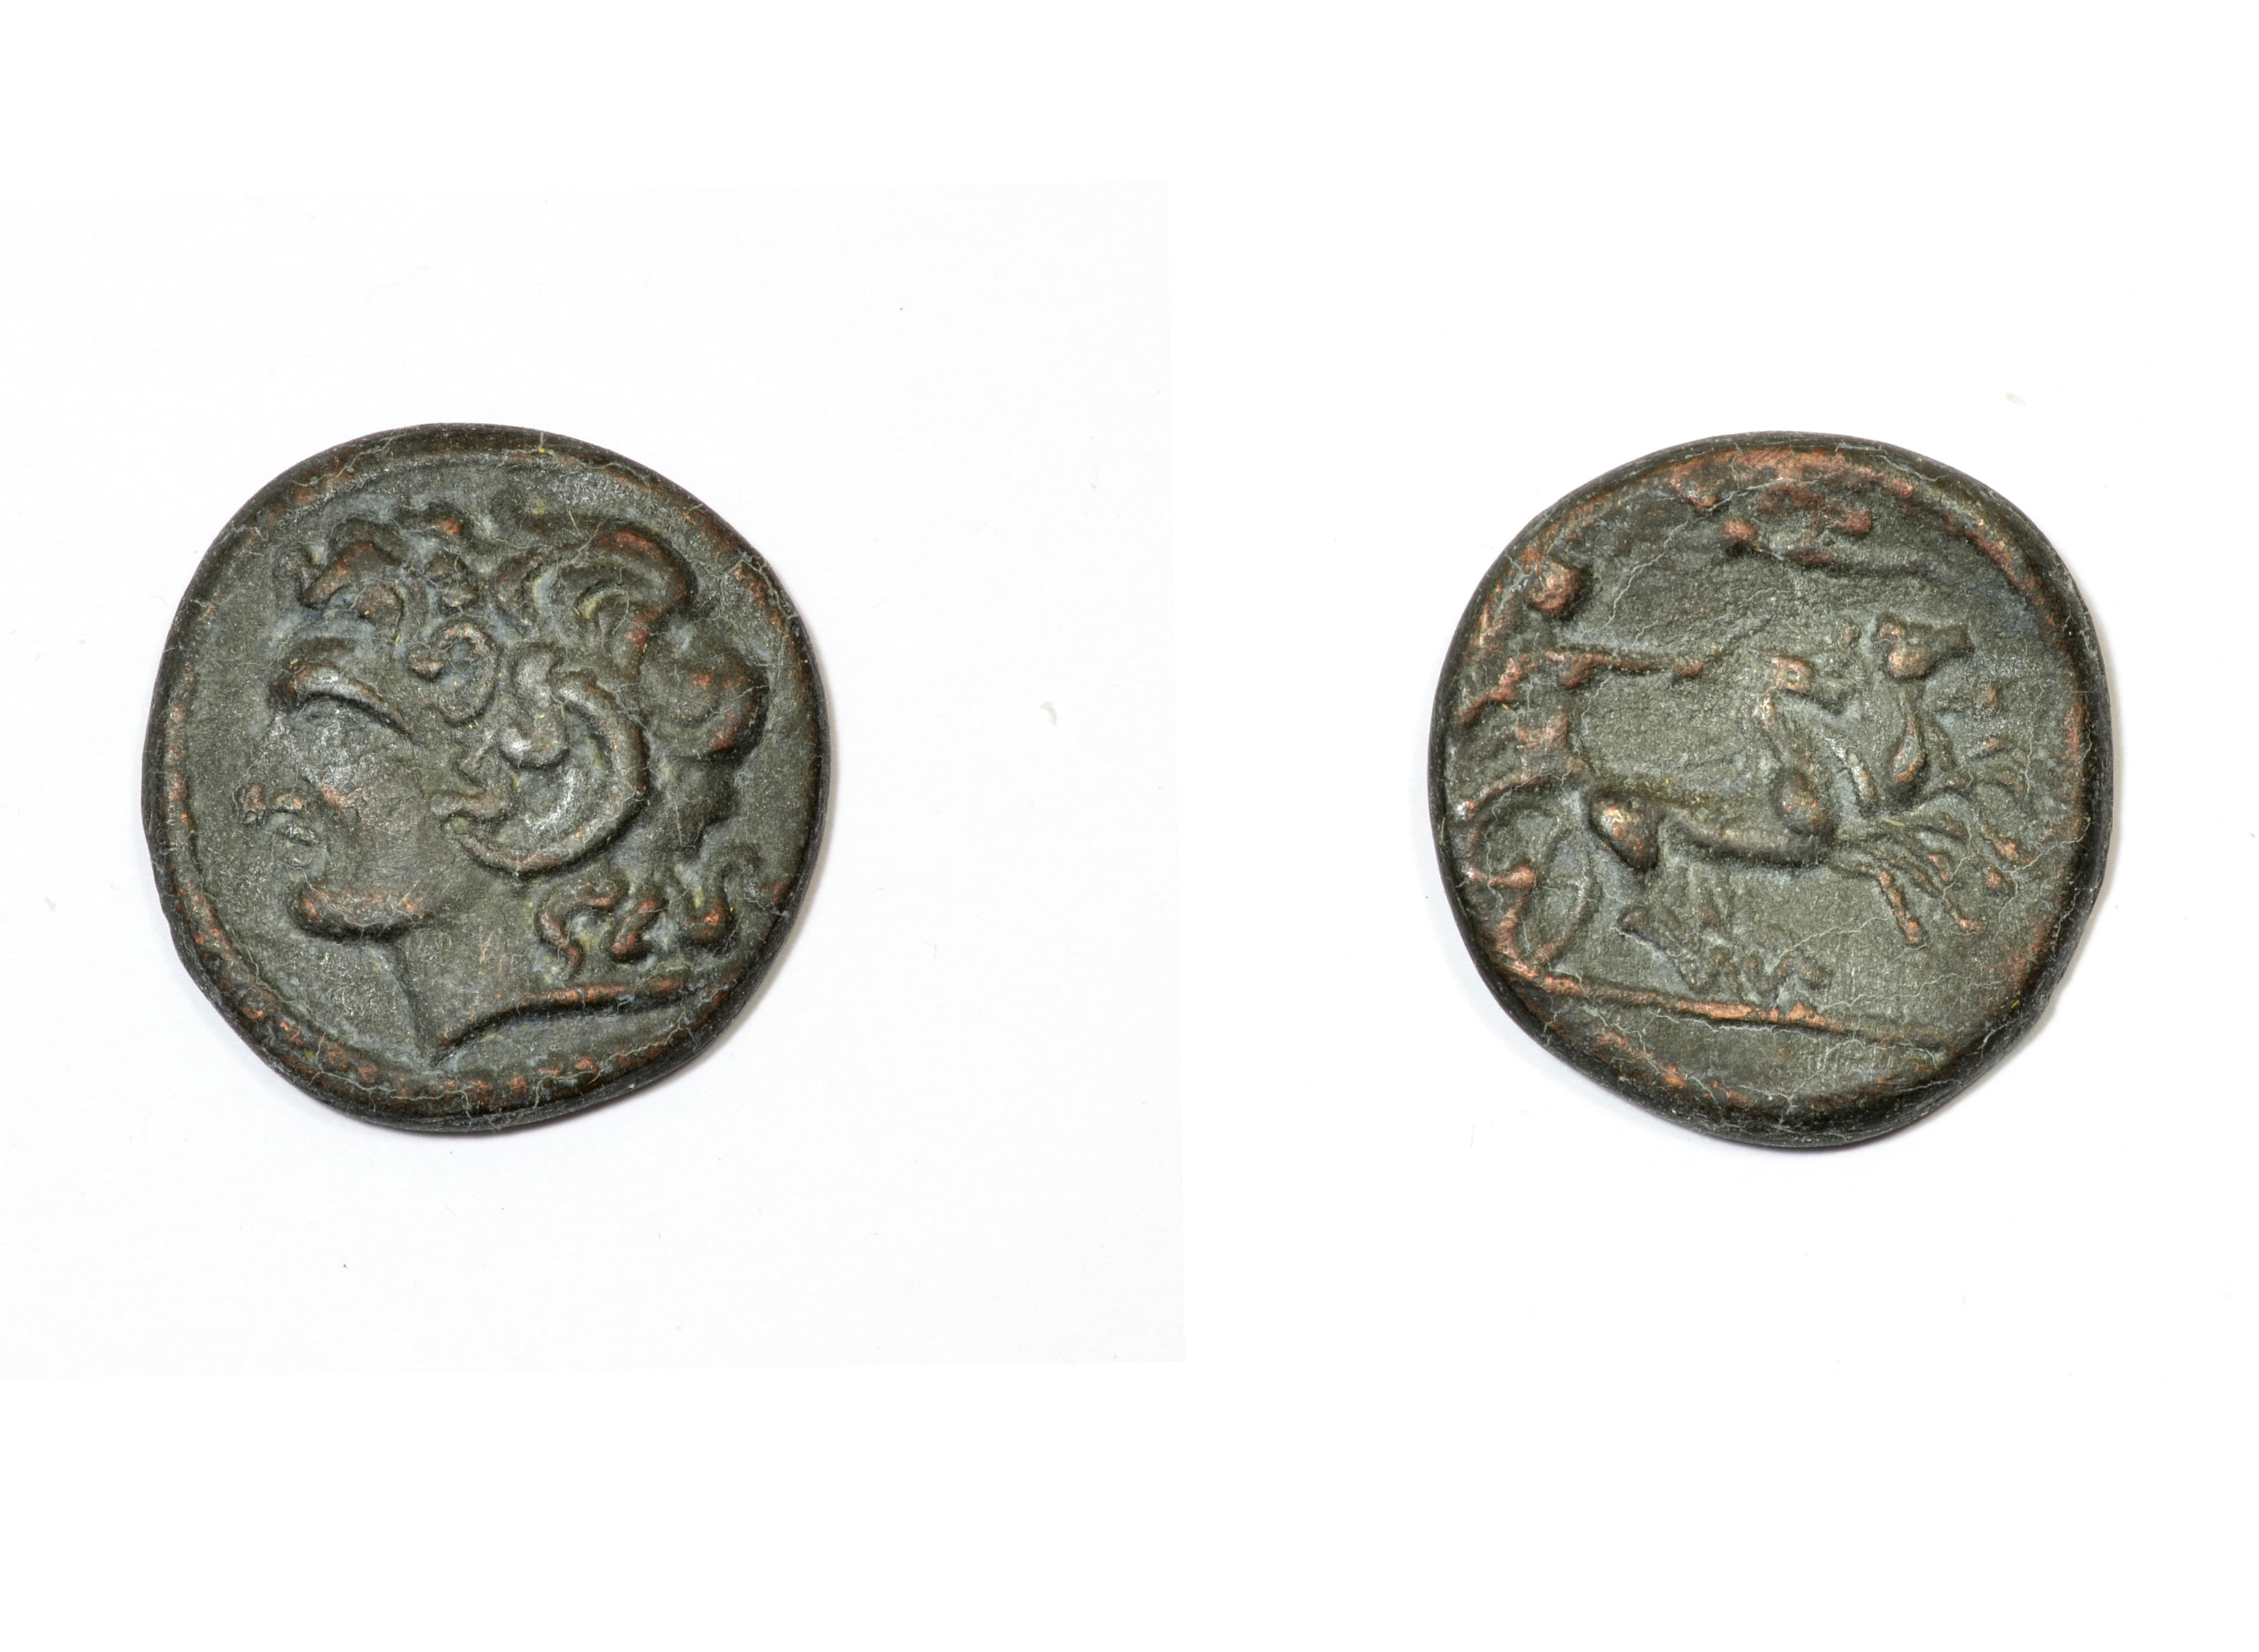 Ancient Greek coin. Alexander the Great and Apollo with the chariot of the sun. Image courtesy of Adobe Stock.